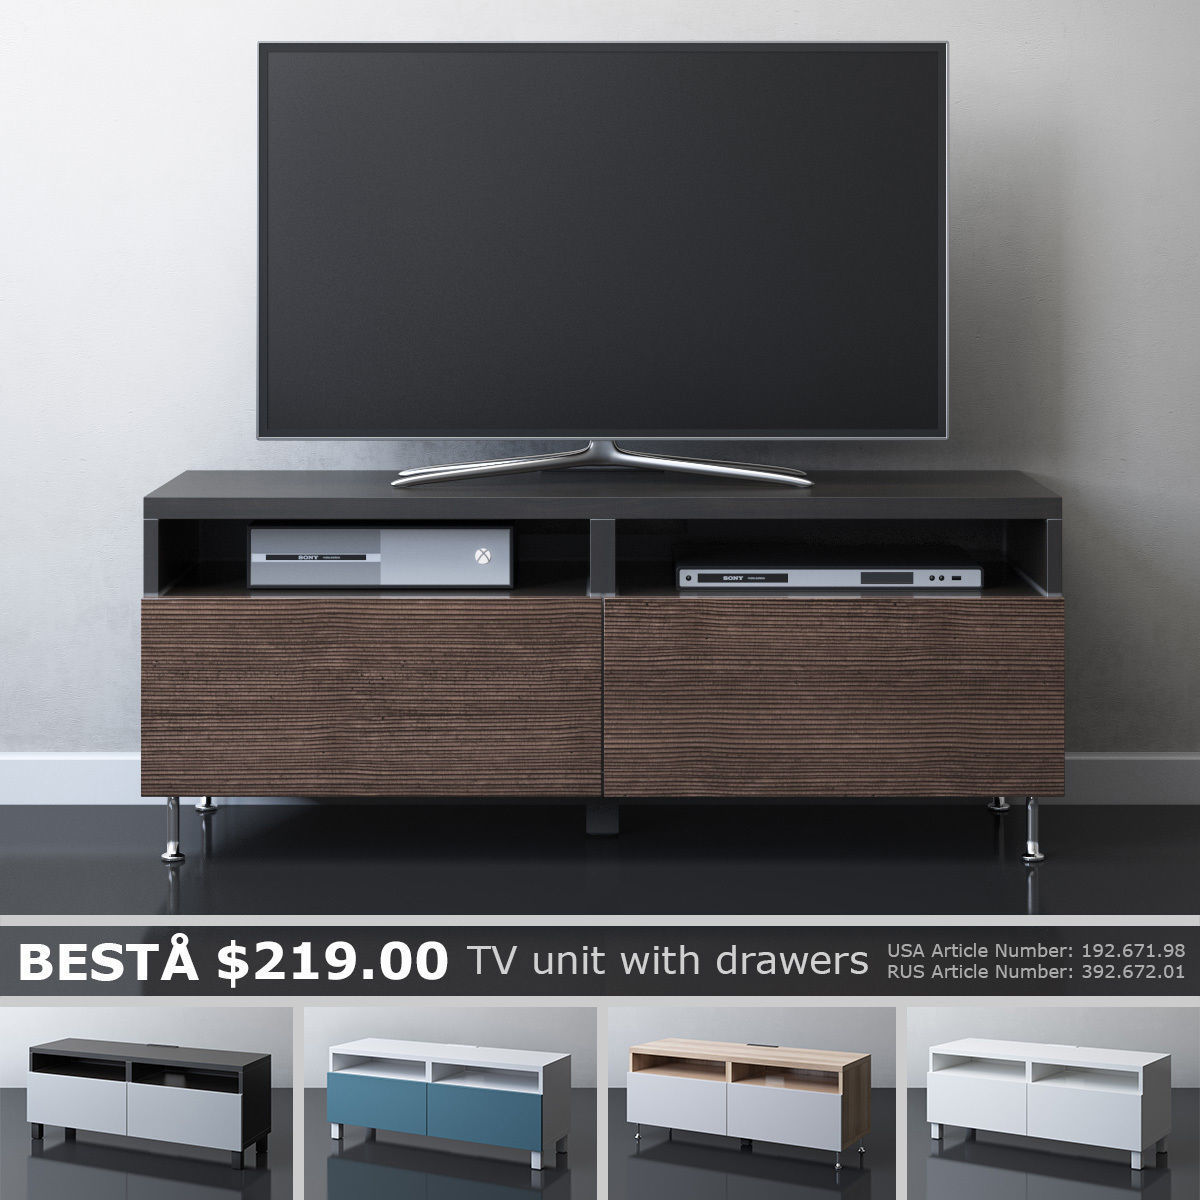 Ikea Besta Tv Unit Ikea Besta Tv Unit With Drawers 3d | Cgtrader